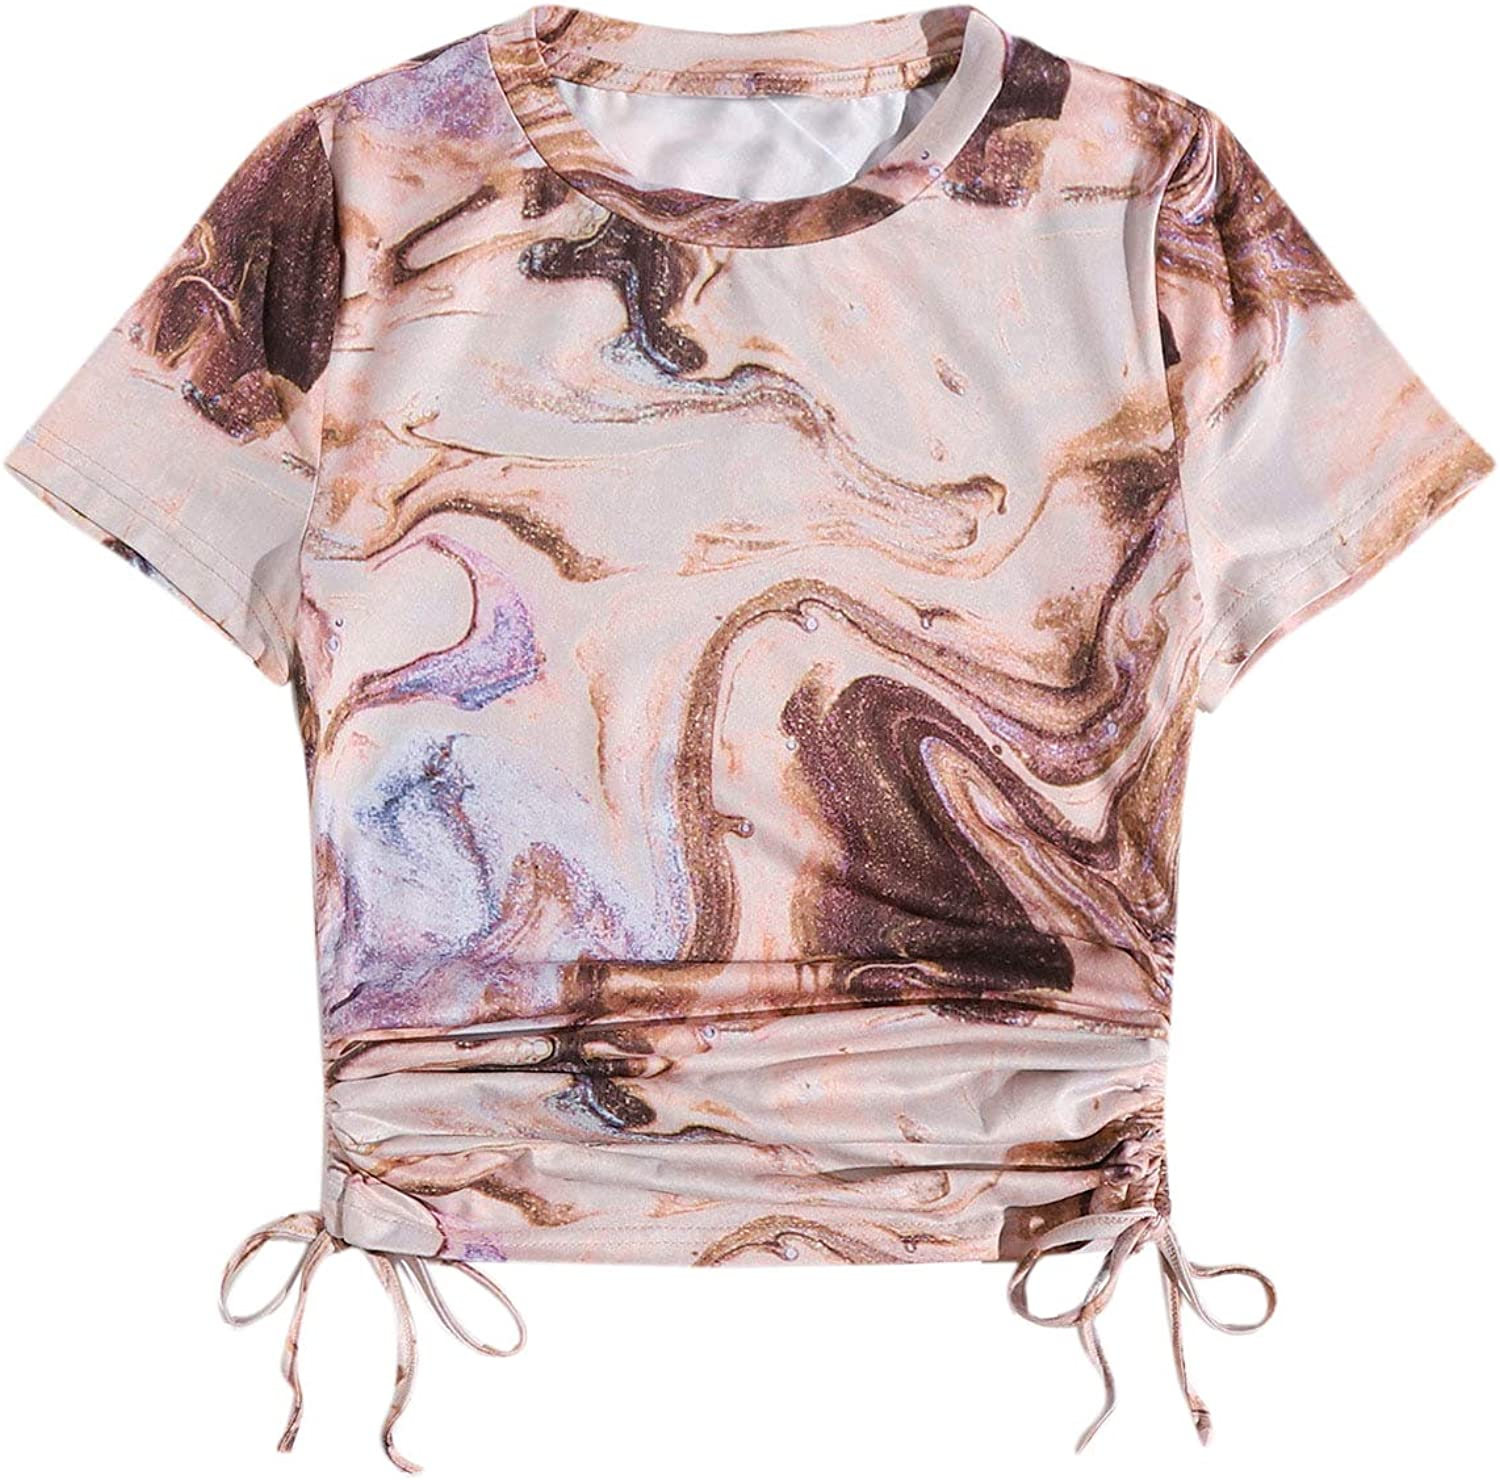 SheIn Women's Marble Print Short Sleeve Crop Tee Drawstring Side Ruched Top T Shirt